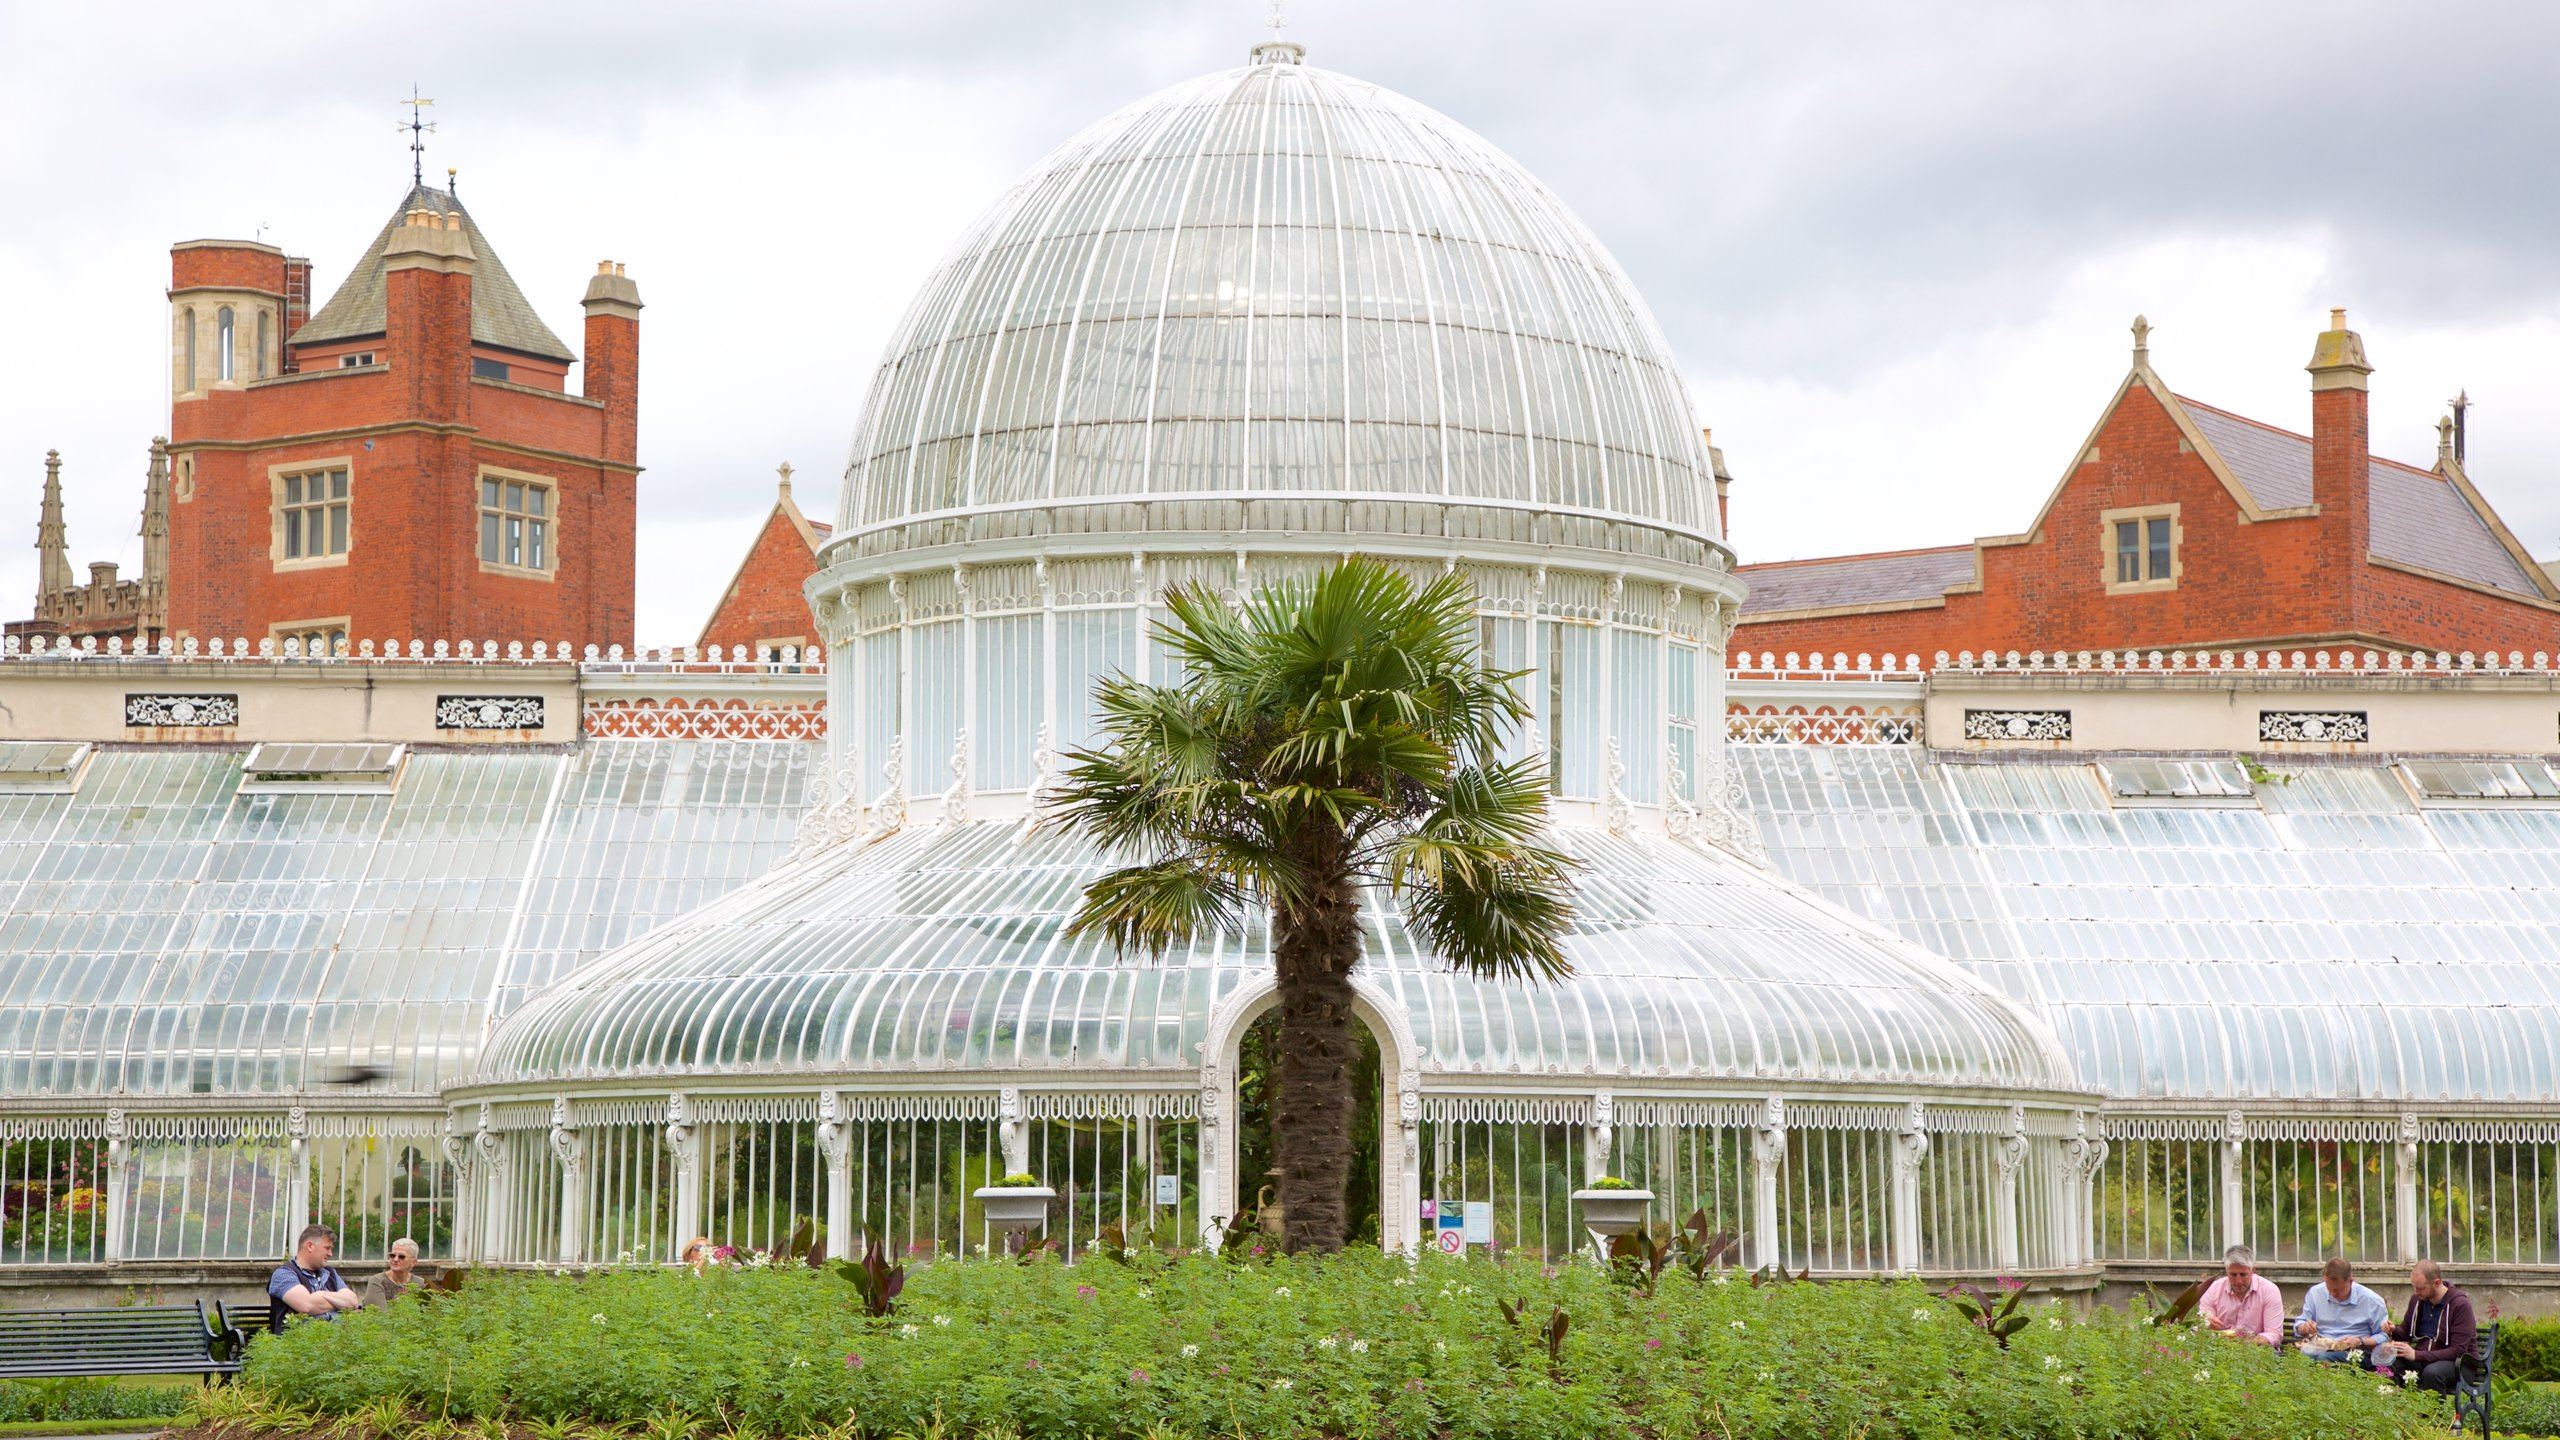 Appreciate the diverse range of tropical plants in the historic greenhouses of this park and visit Northern Ireland's largest museum.